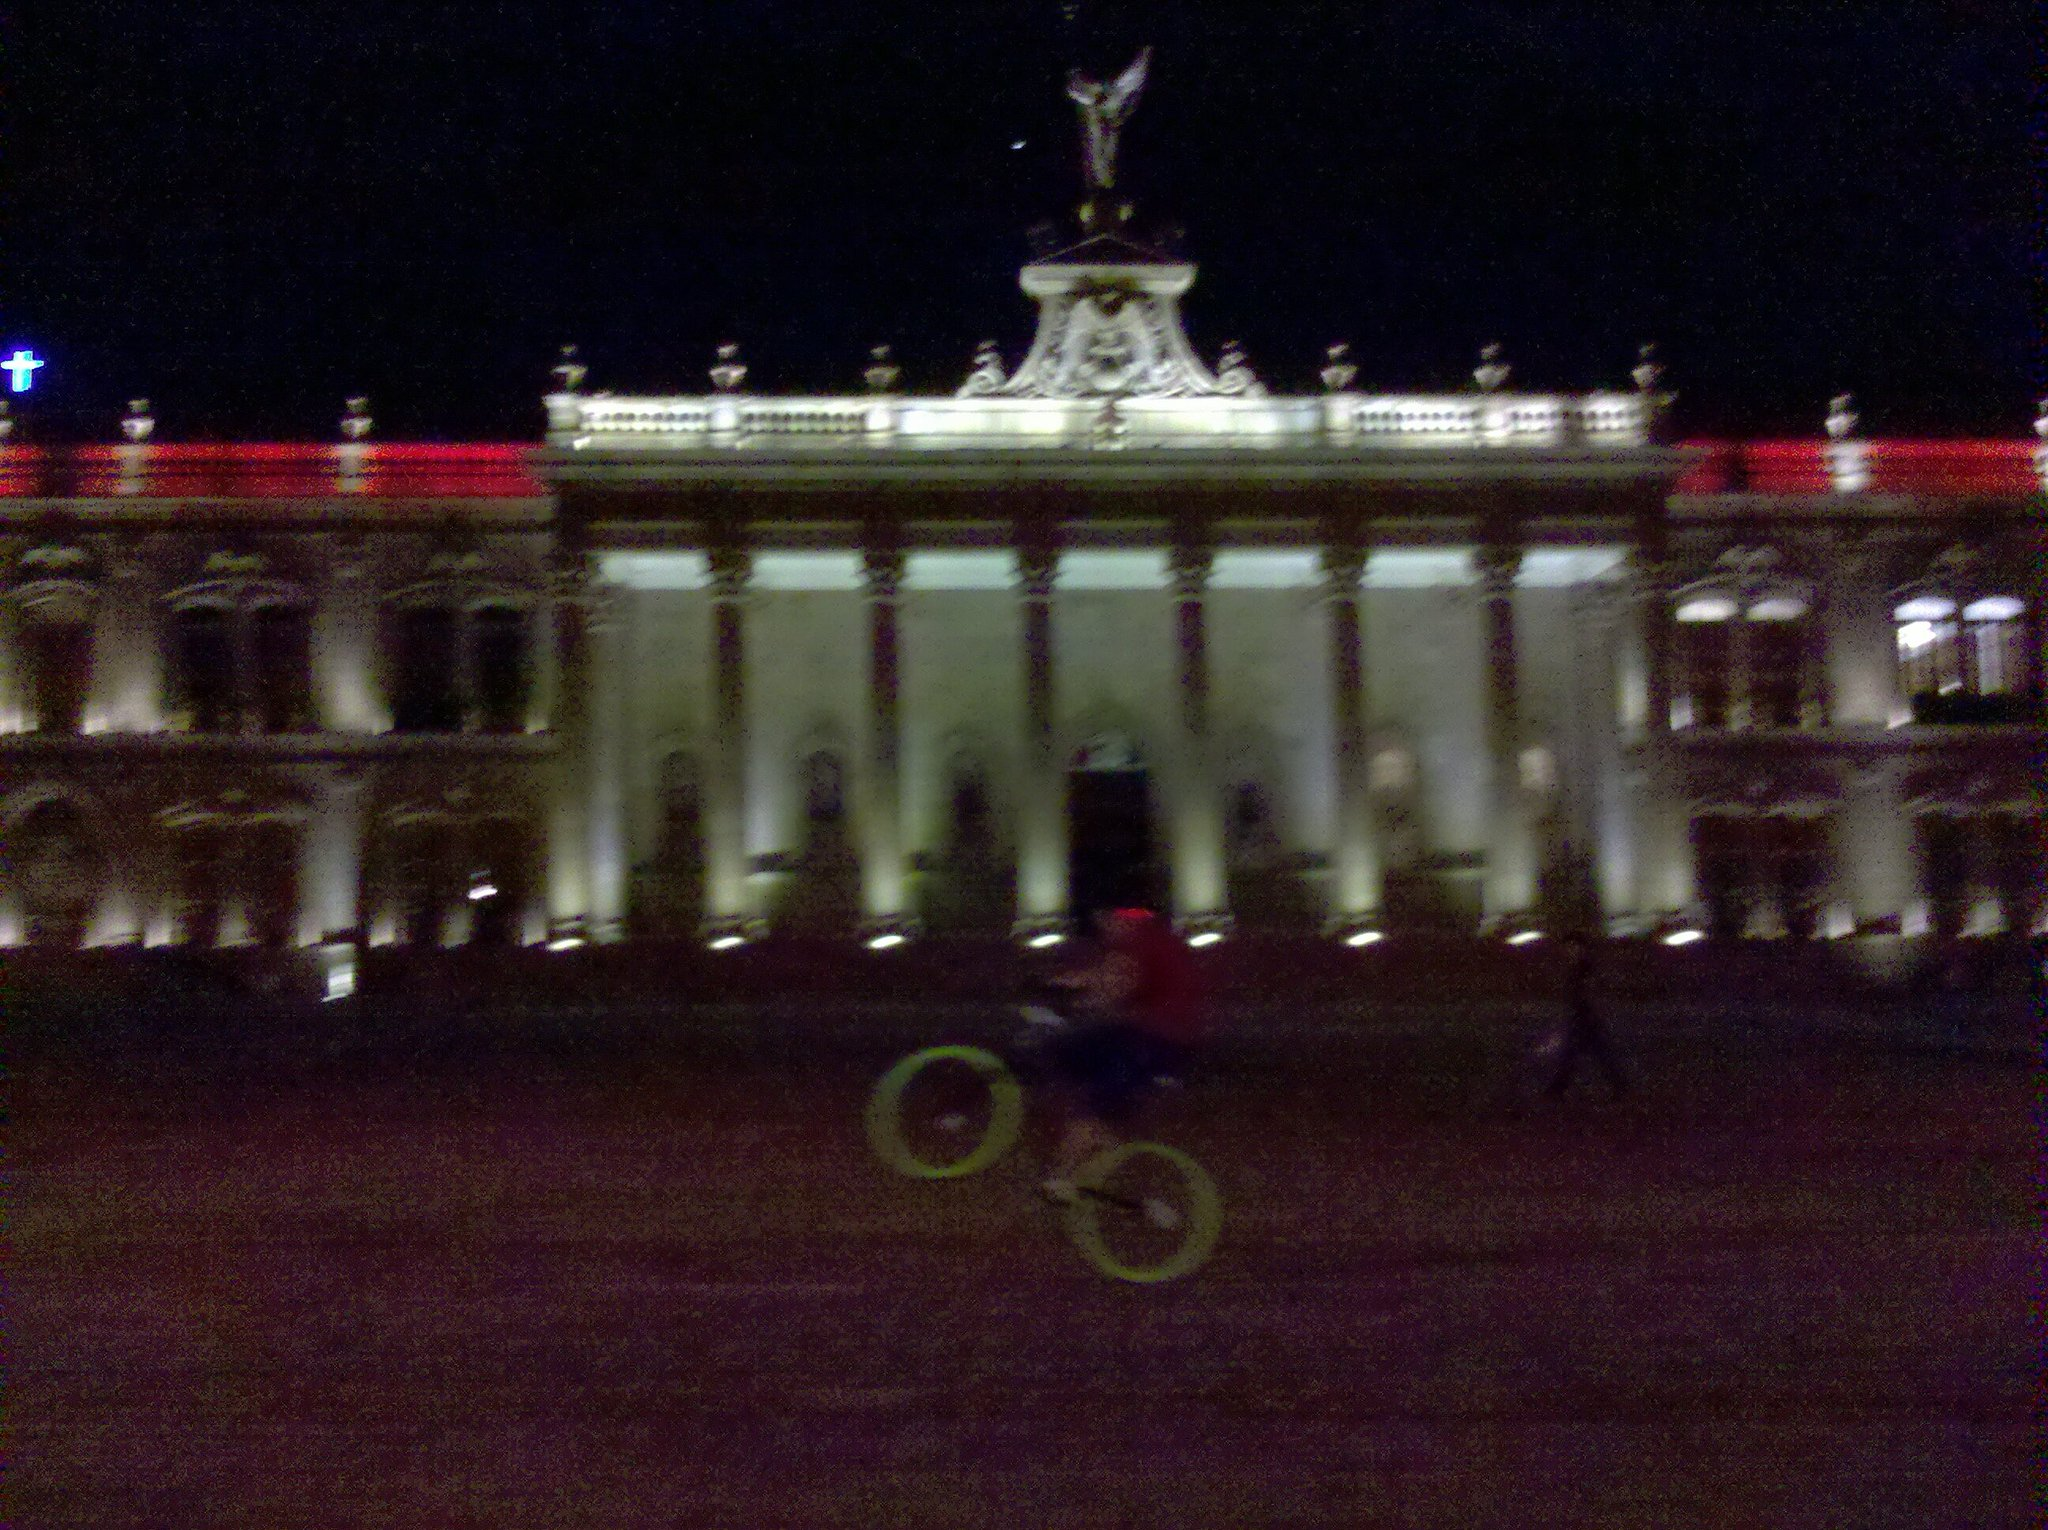 At a palace http://t.co/JnZkr8oF